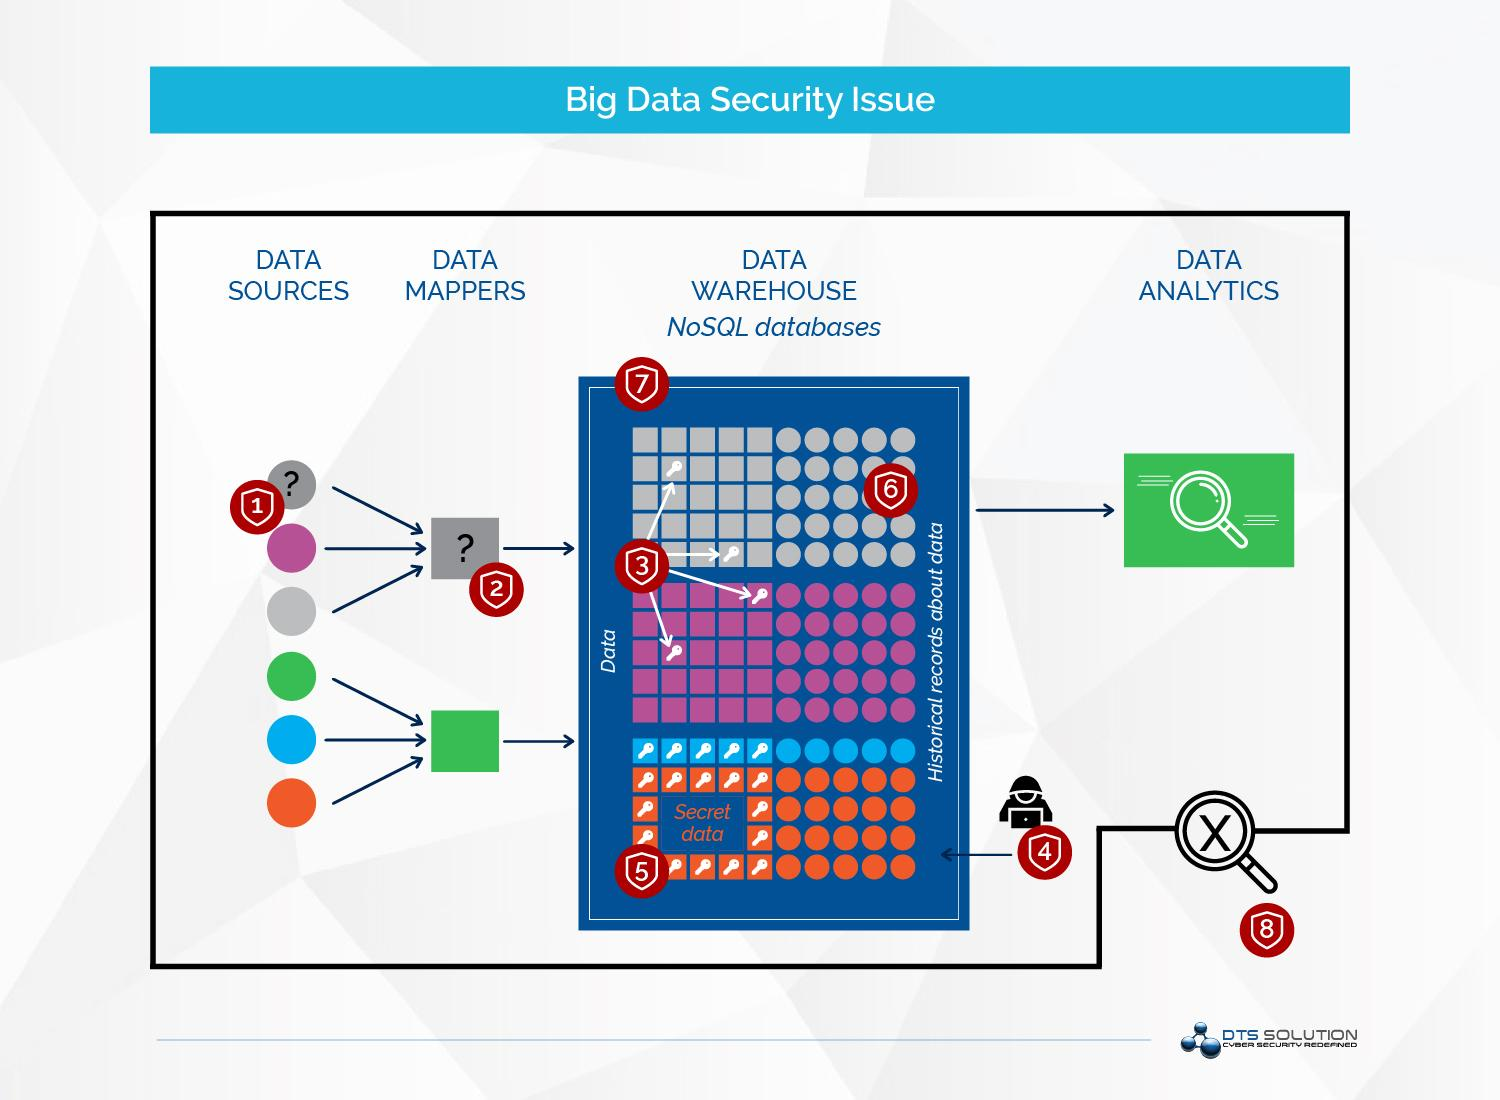 Big Data Security Issue